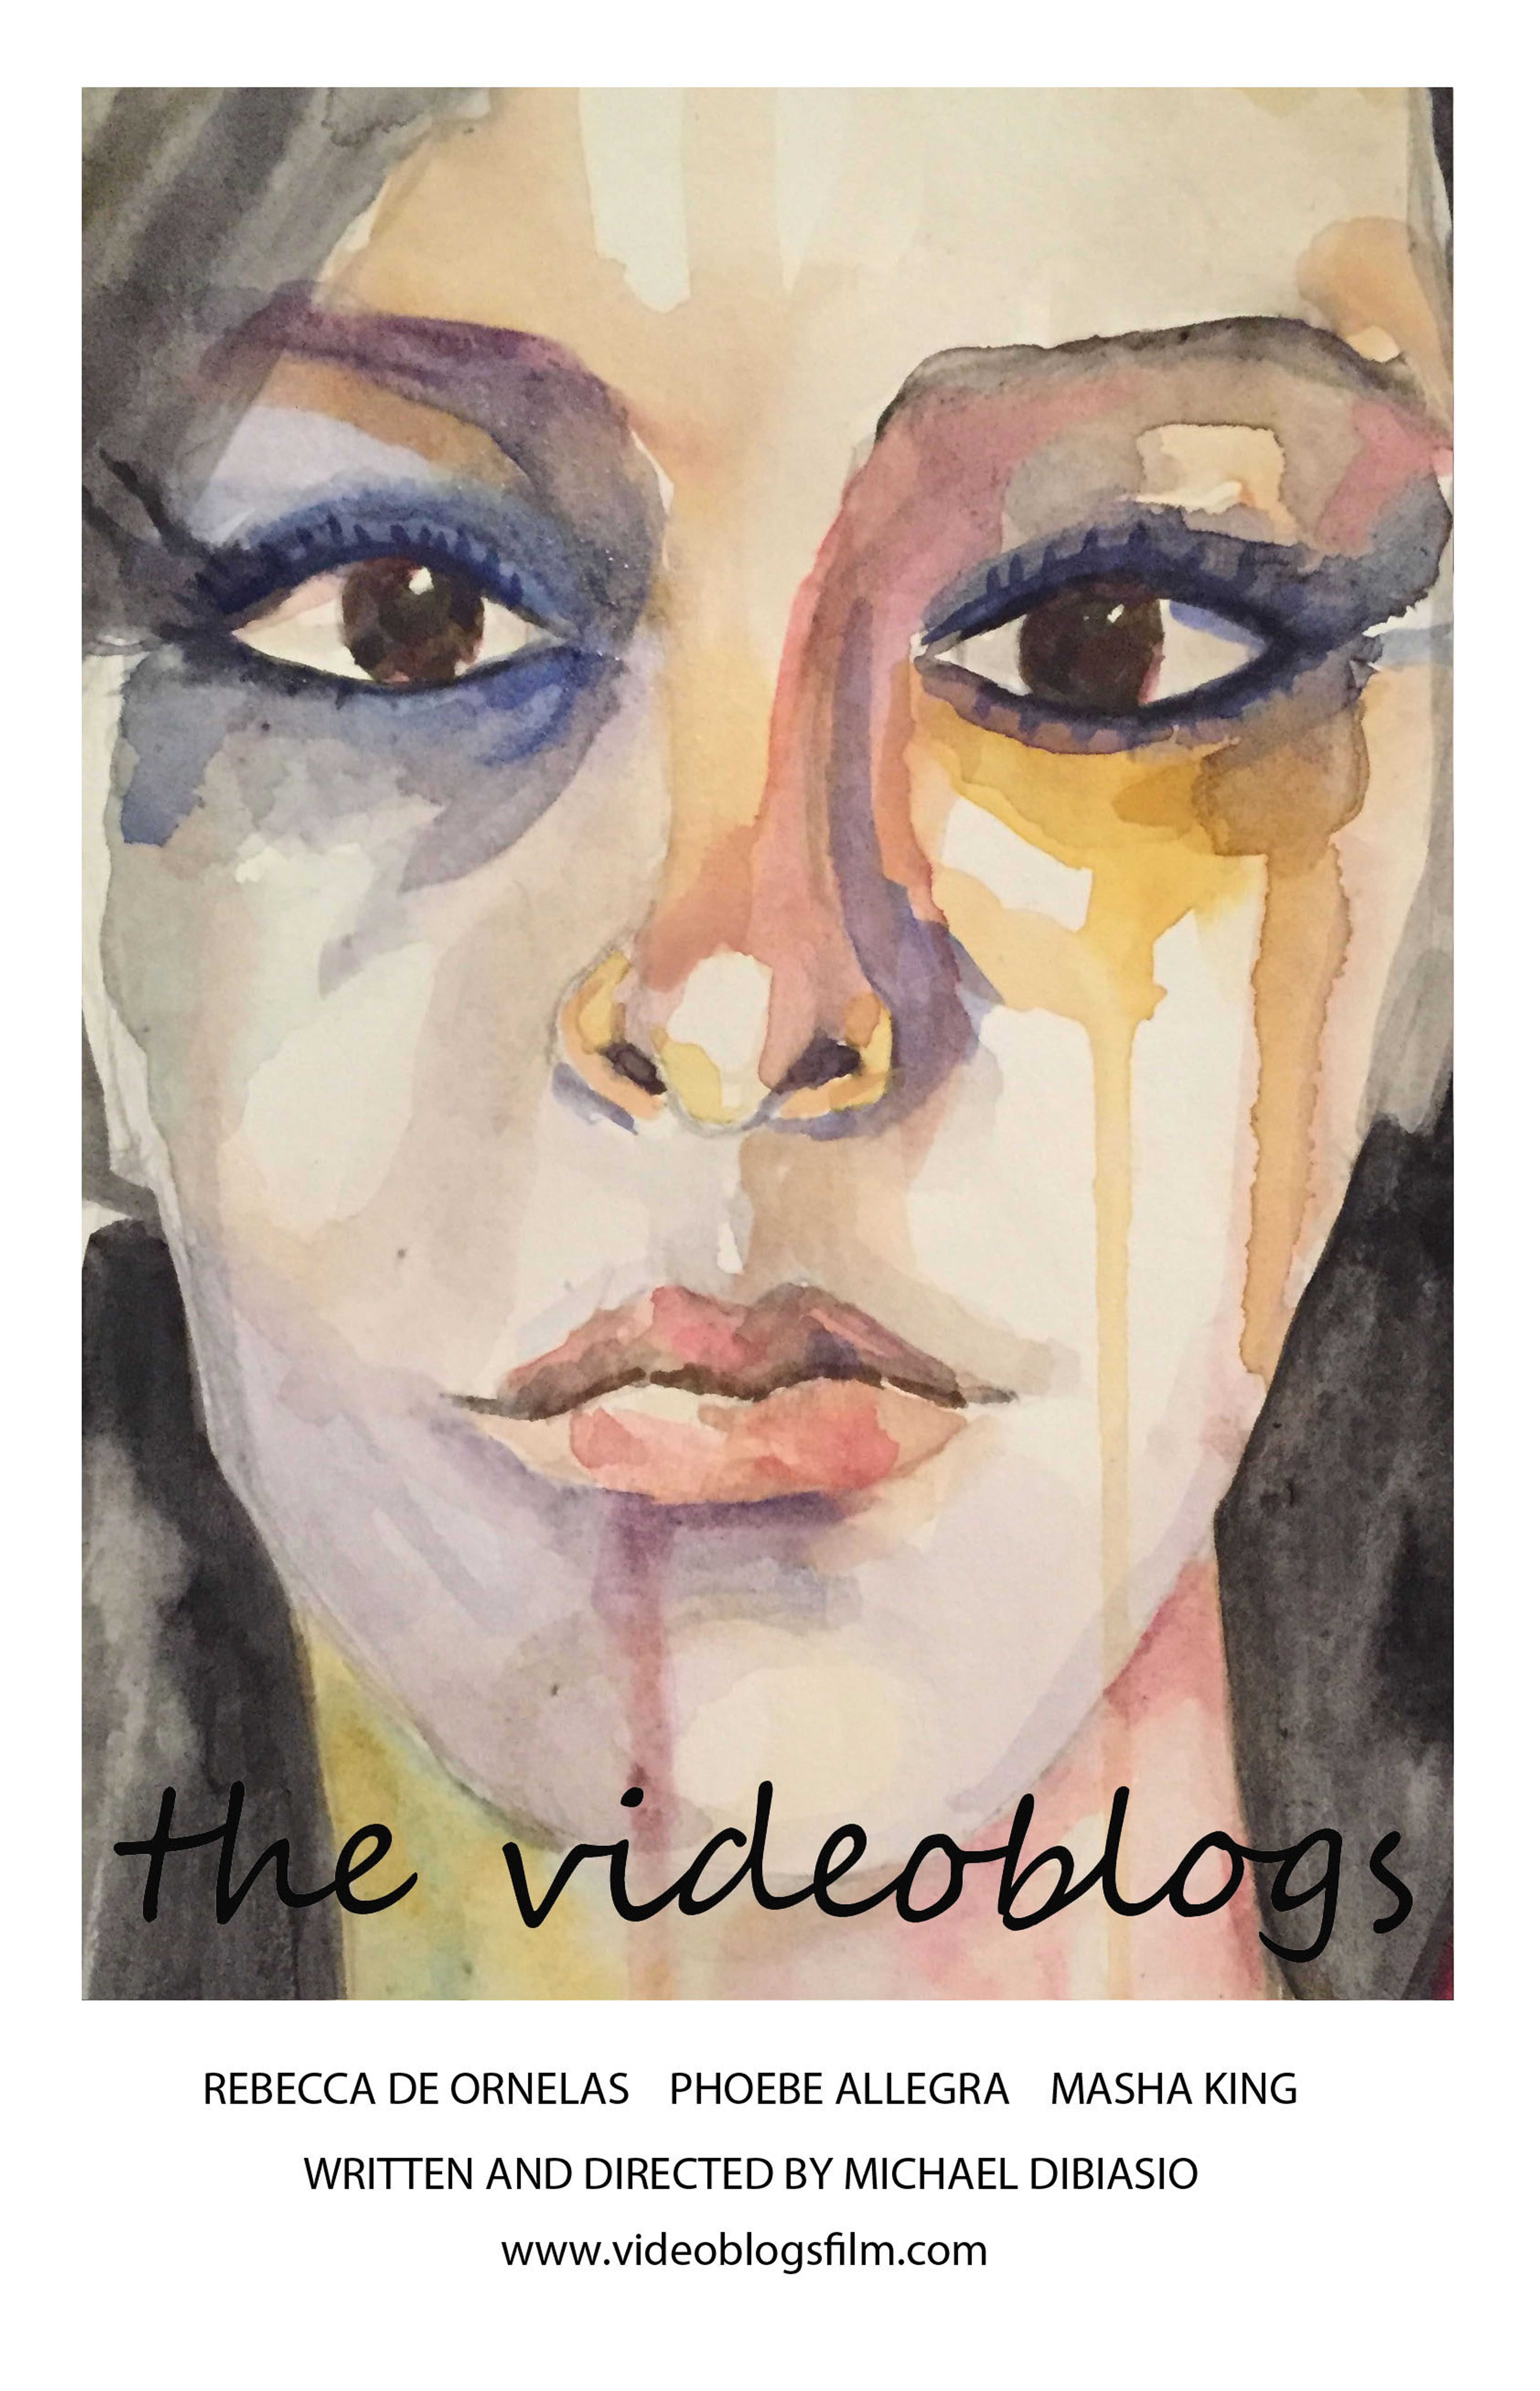 thevideoblogsposterrevision11x17.jpg